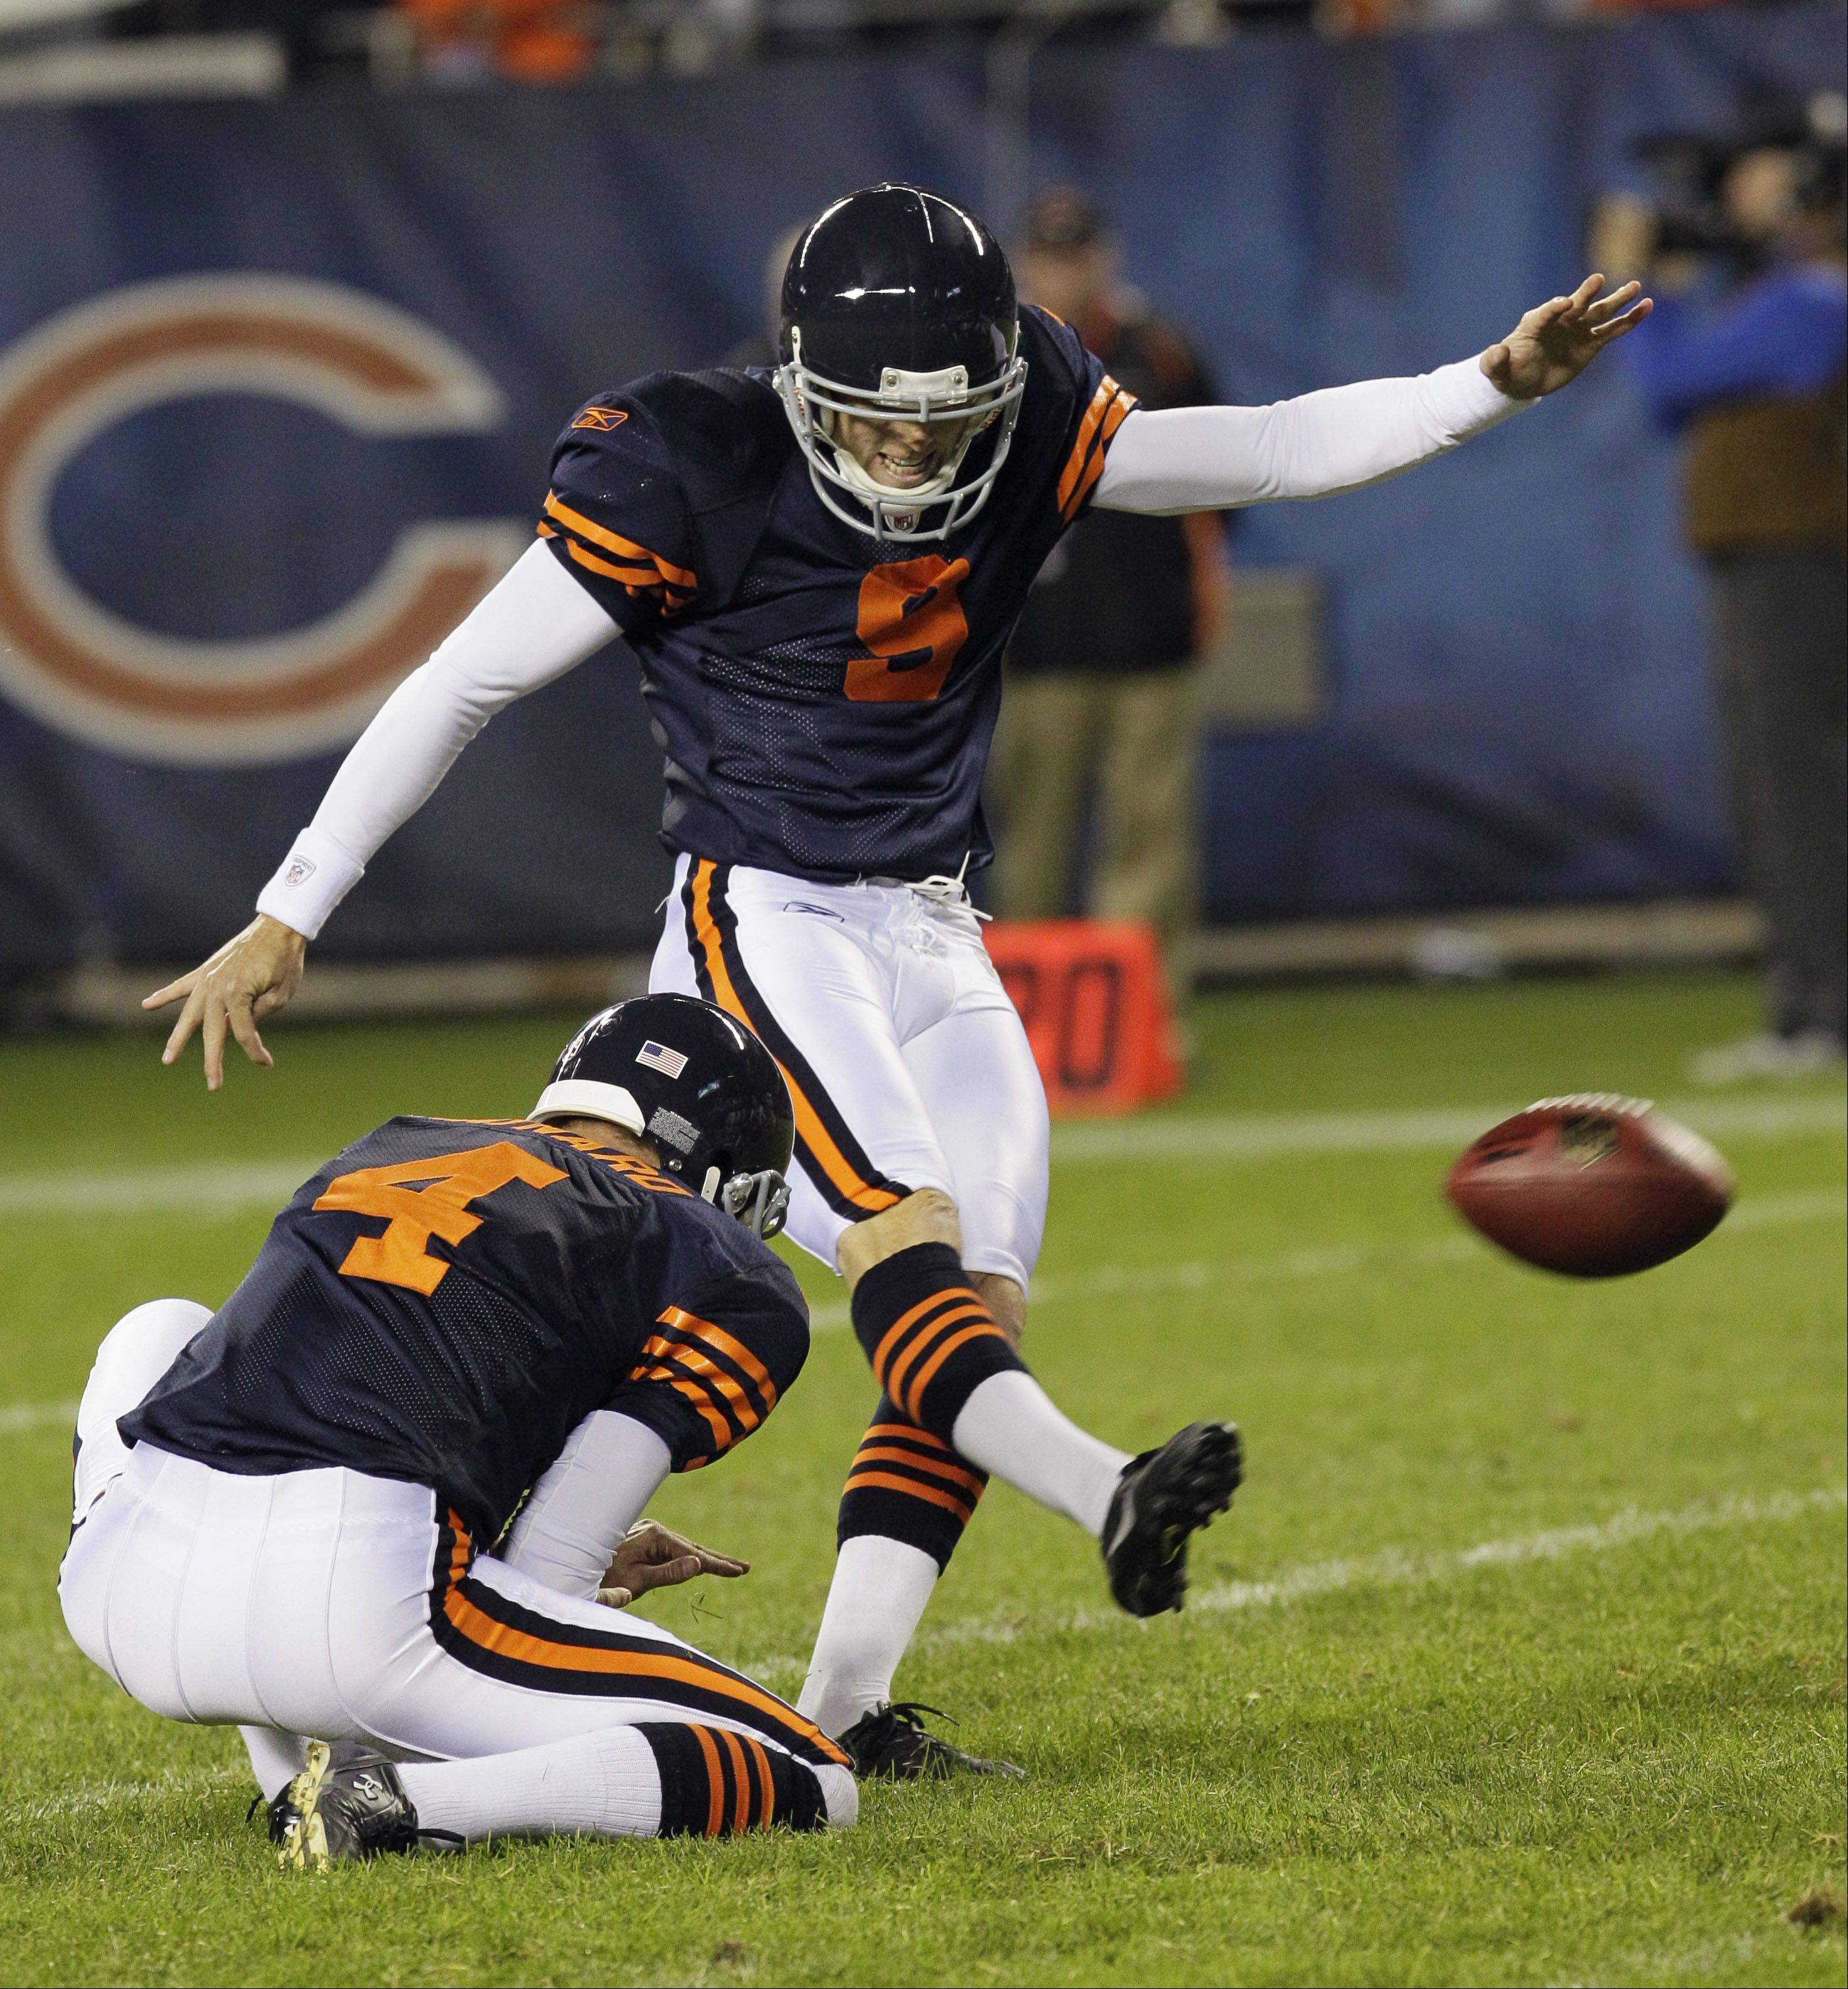 Robbie Gould kicks a field goal with seconds left to give the Bears a 20-17 win over the Green Bay Packers on Sept. 27, 2010, in Chicago. Gould's holder, 37-year-old Brad Maynard, will not be back with the Bears this season.